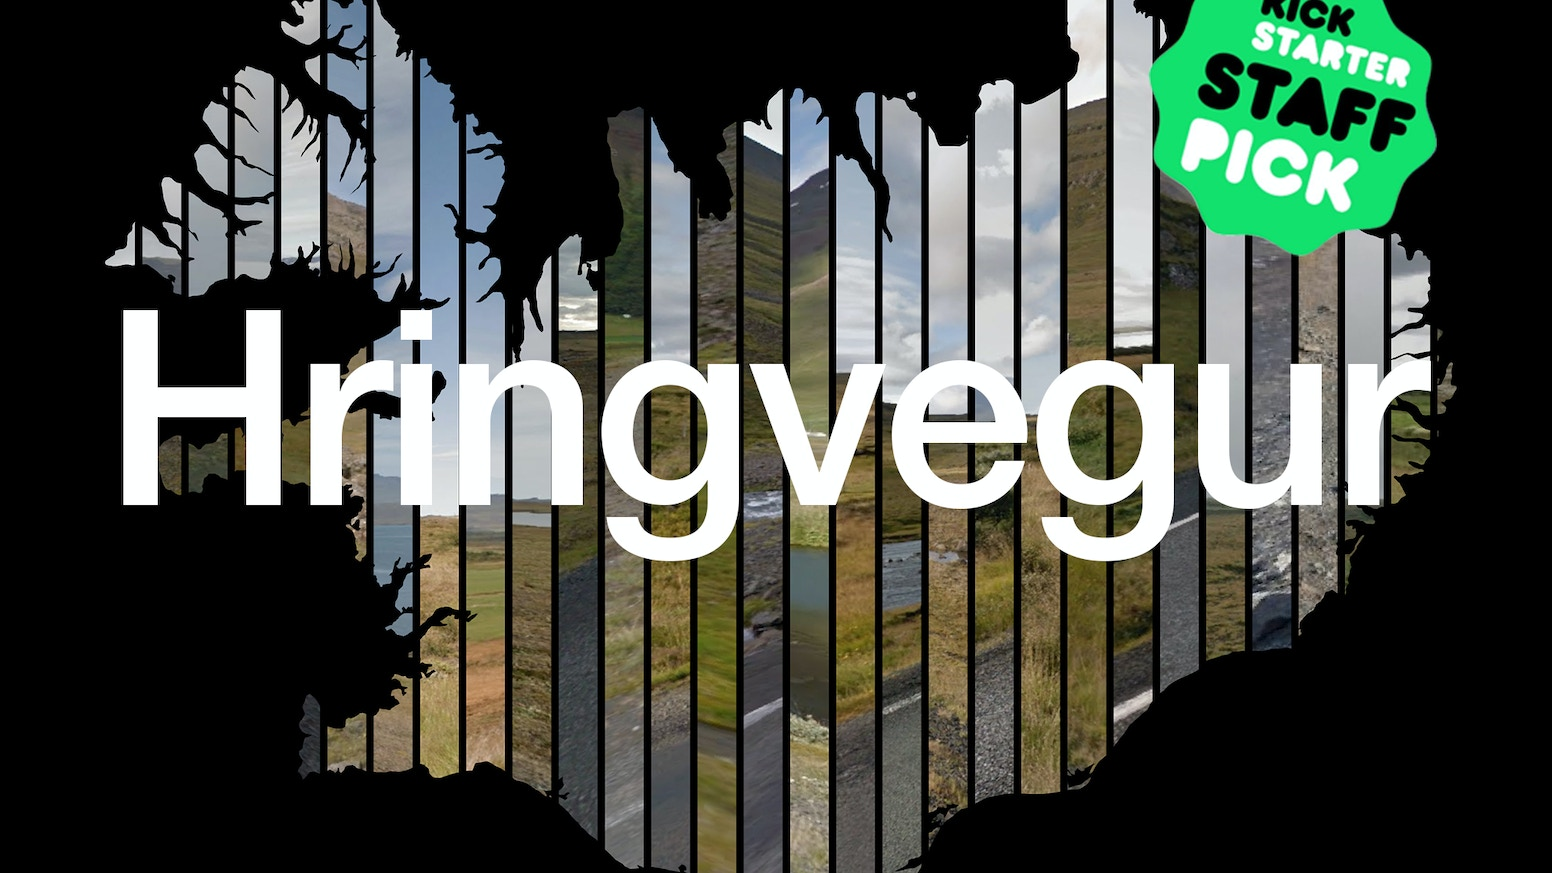 Feature length time-lapse video & audio collage of Iceland's diverse landscape via the Hringvegur (Ring Road) that circles the island.